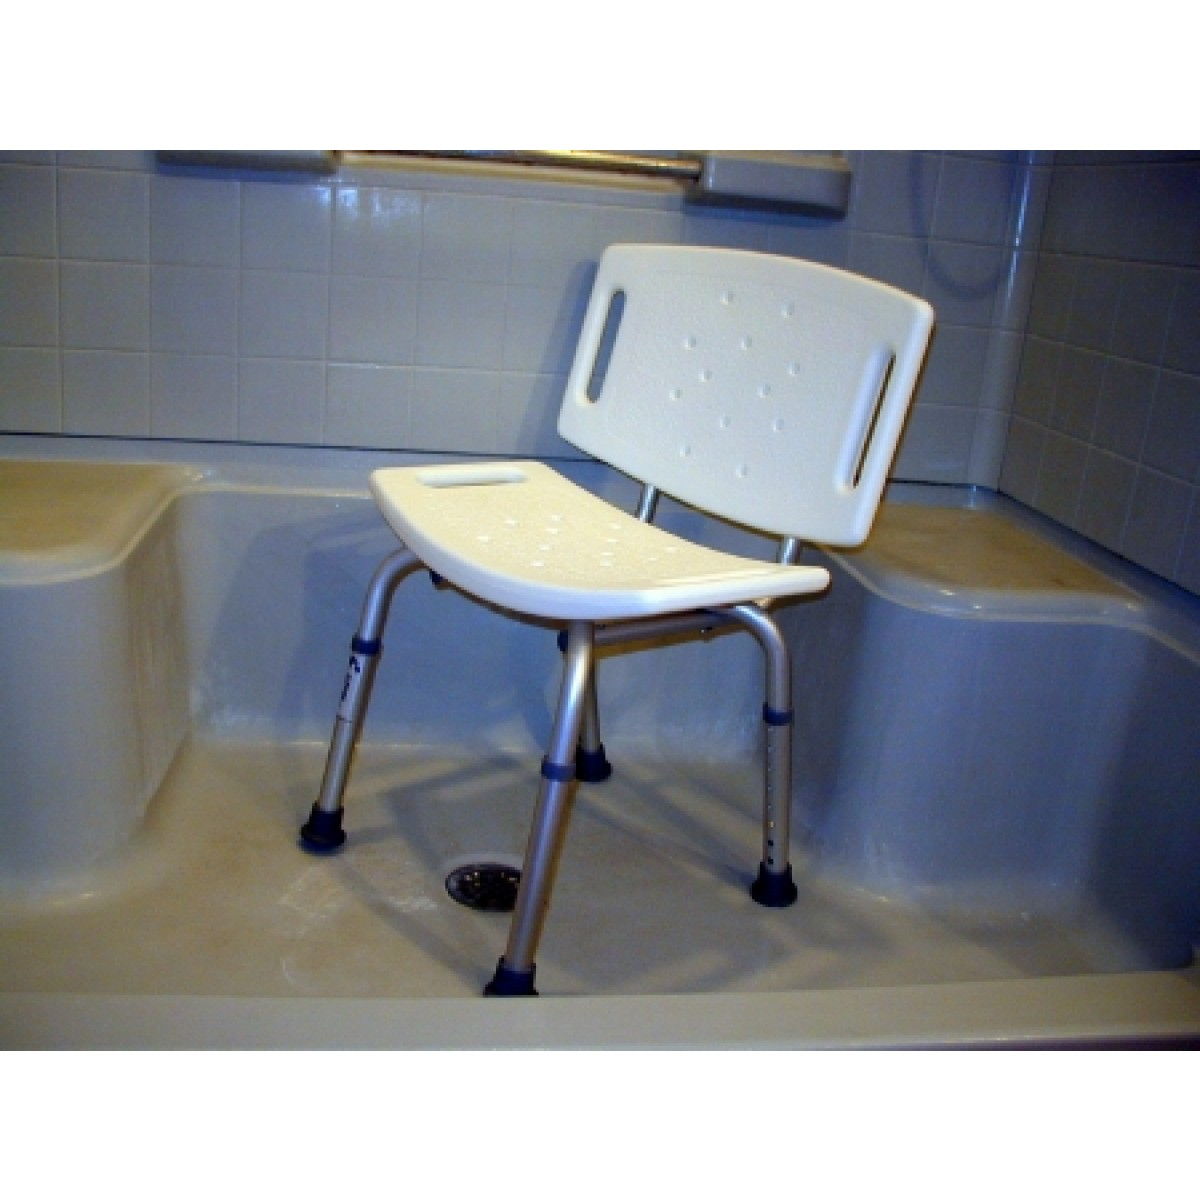 sunmark Econo Shower Safety Chair Push-button - 114-4435